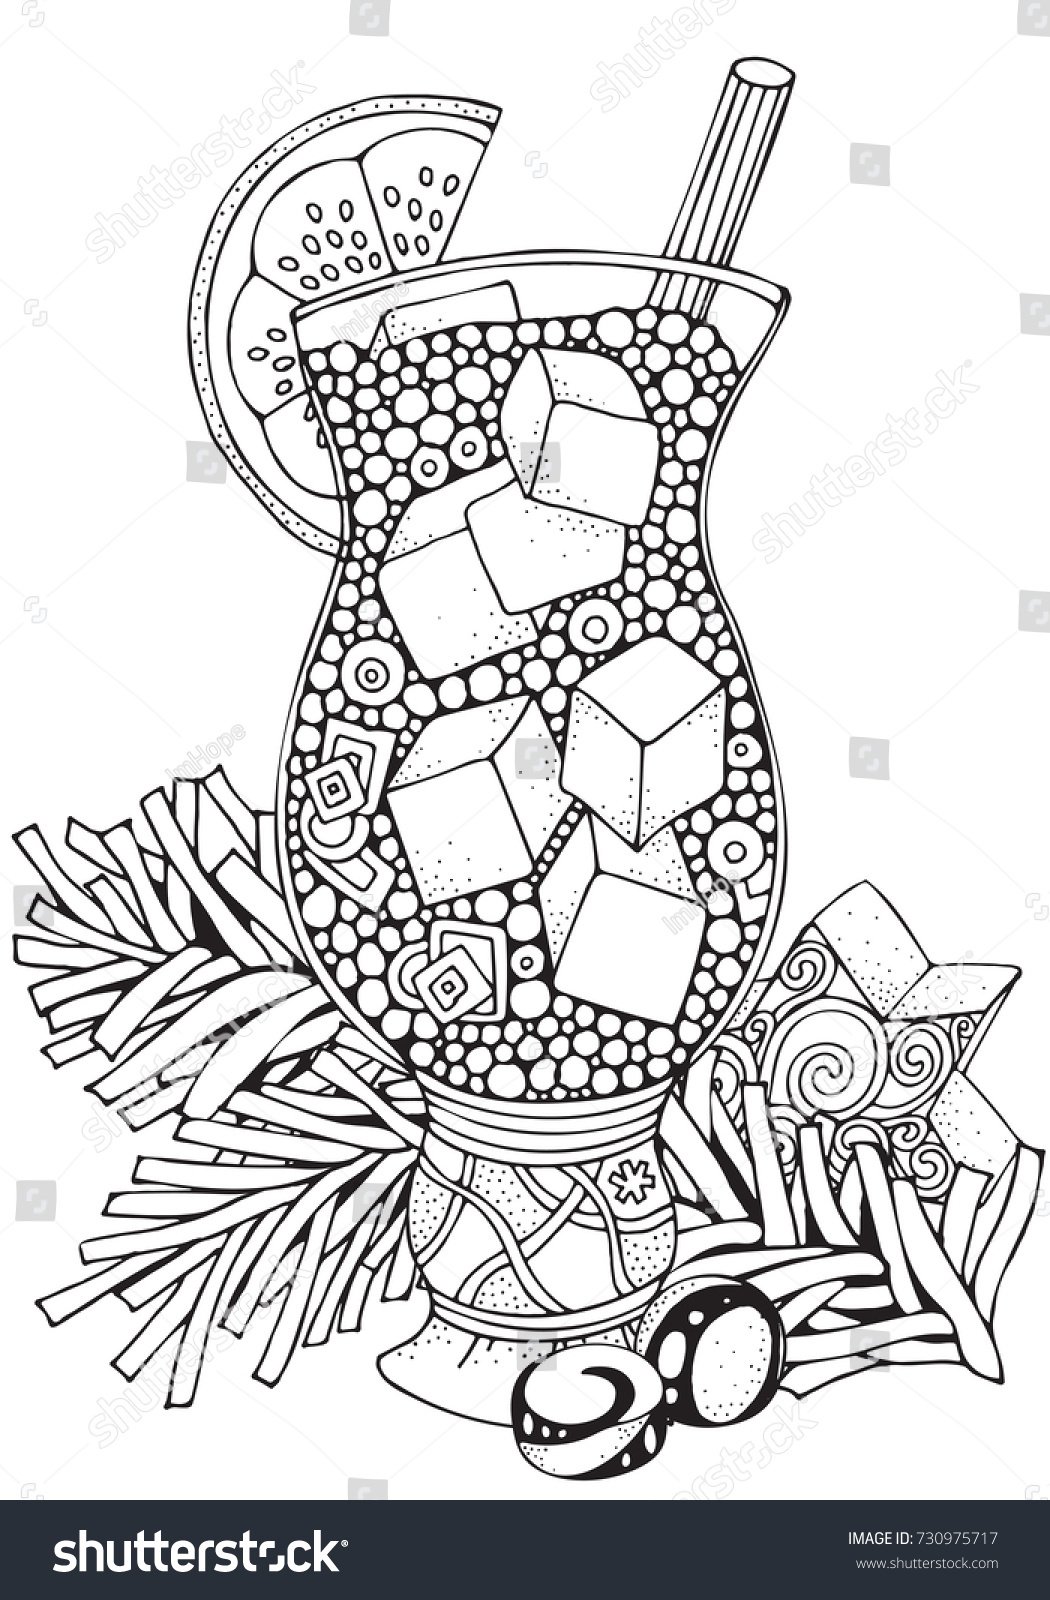 Glass Cup With Lemonade And Ice Pieces Adult Coloring Book Page A4 Size